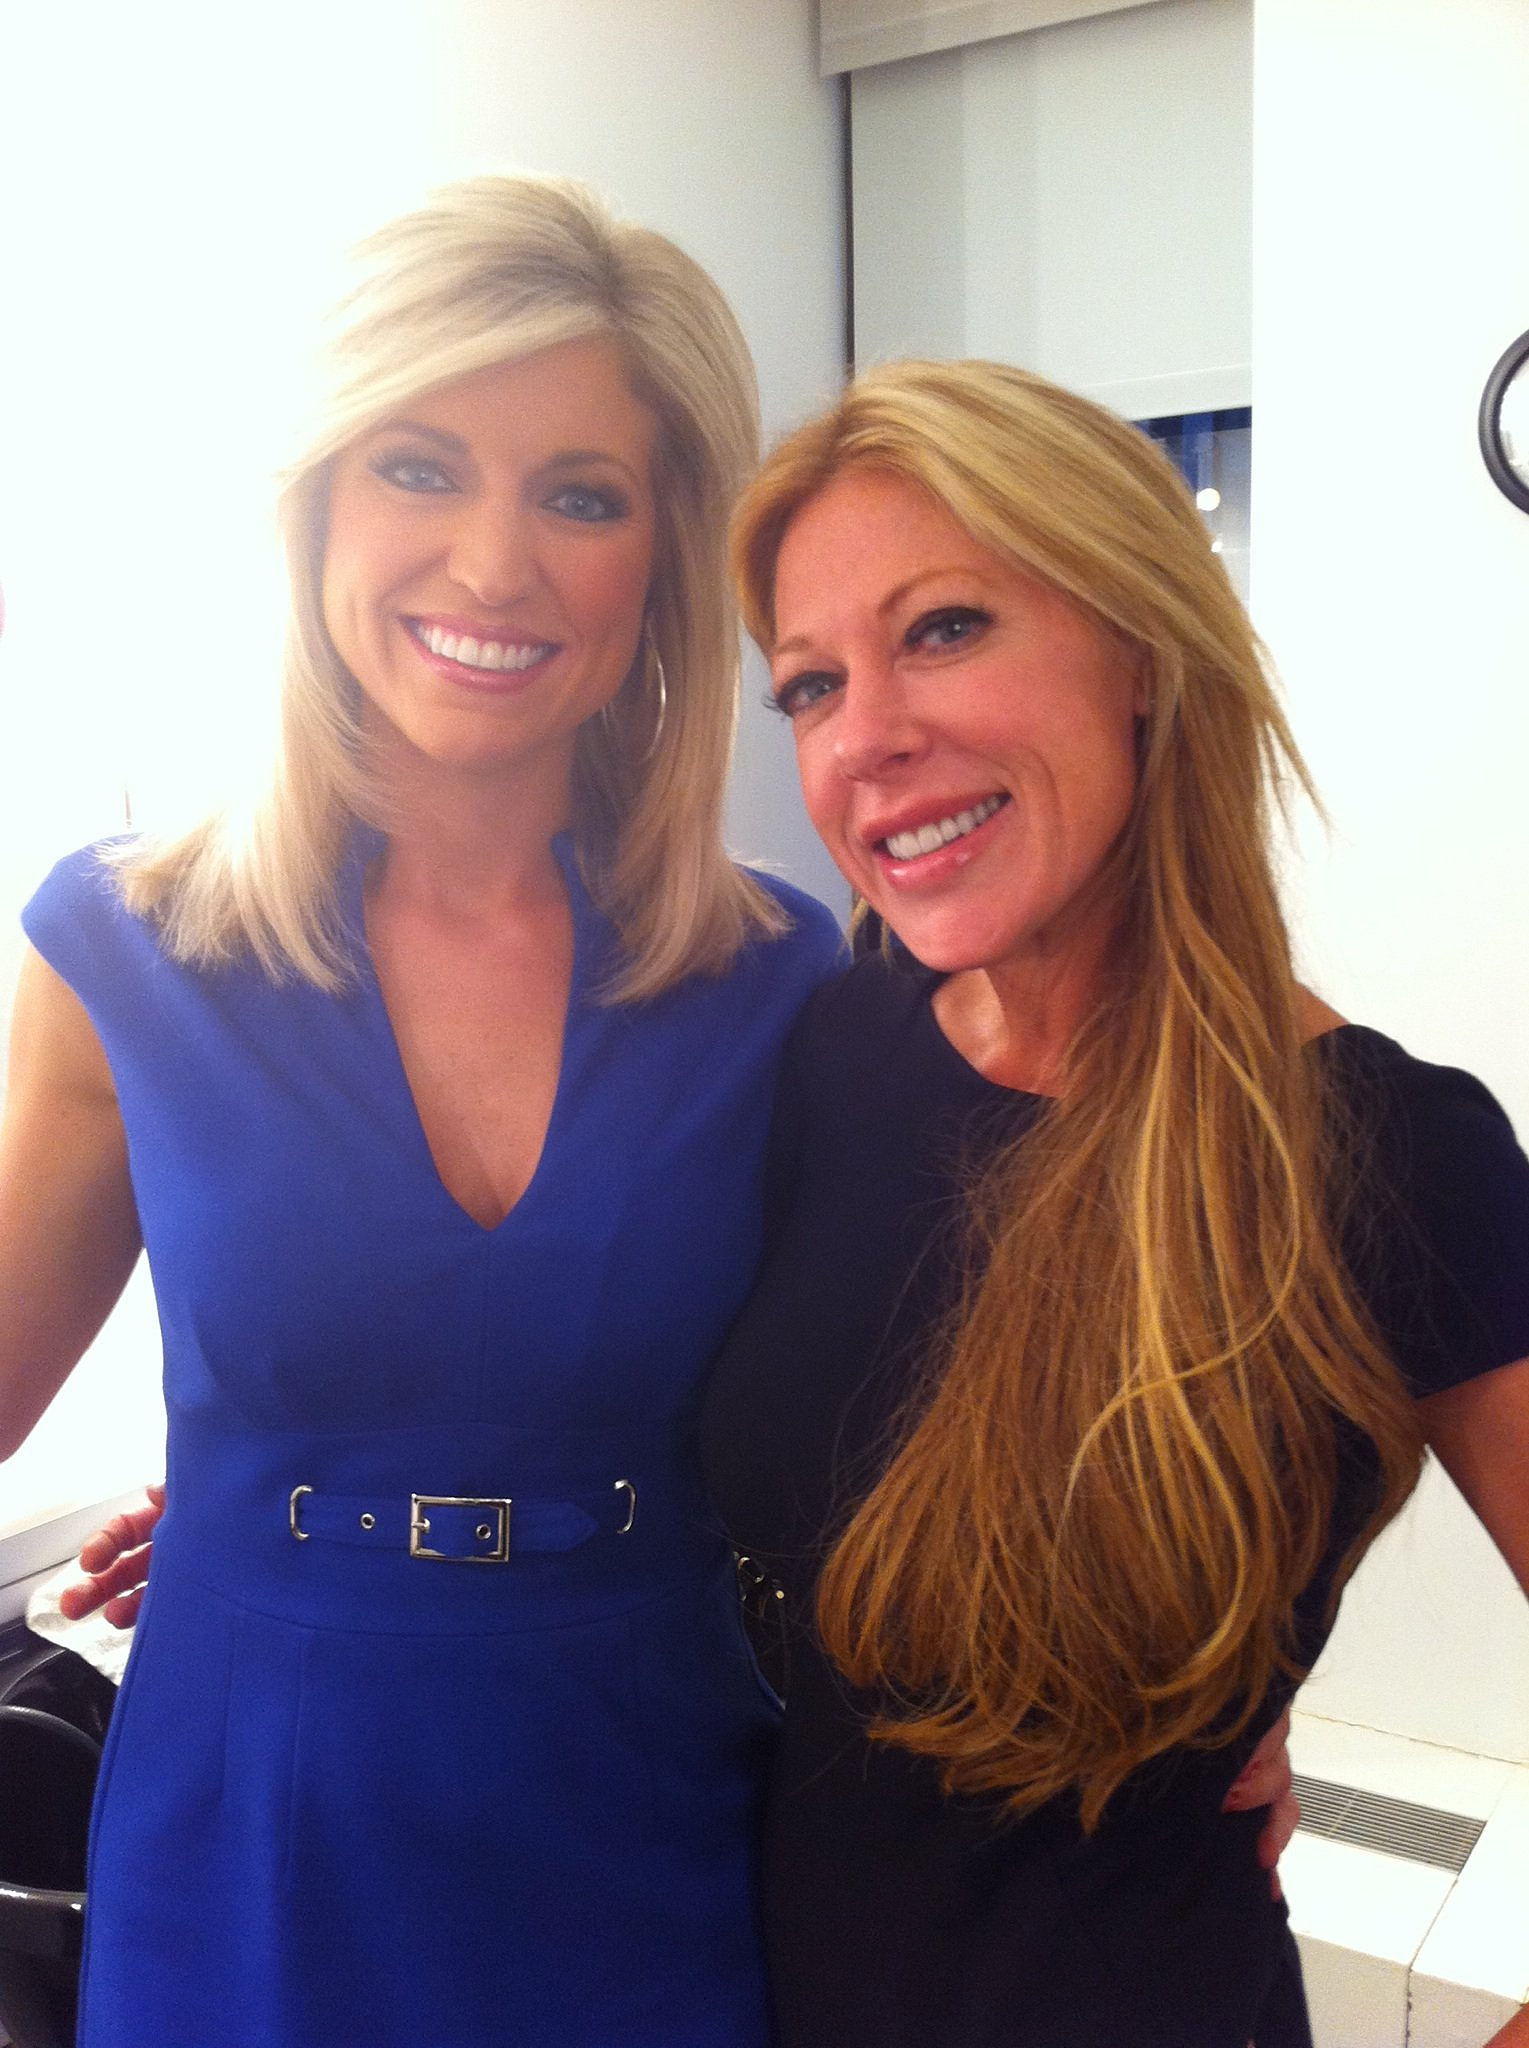 Aliciahunter1 with ainsley earhardt of fox news